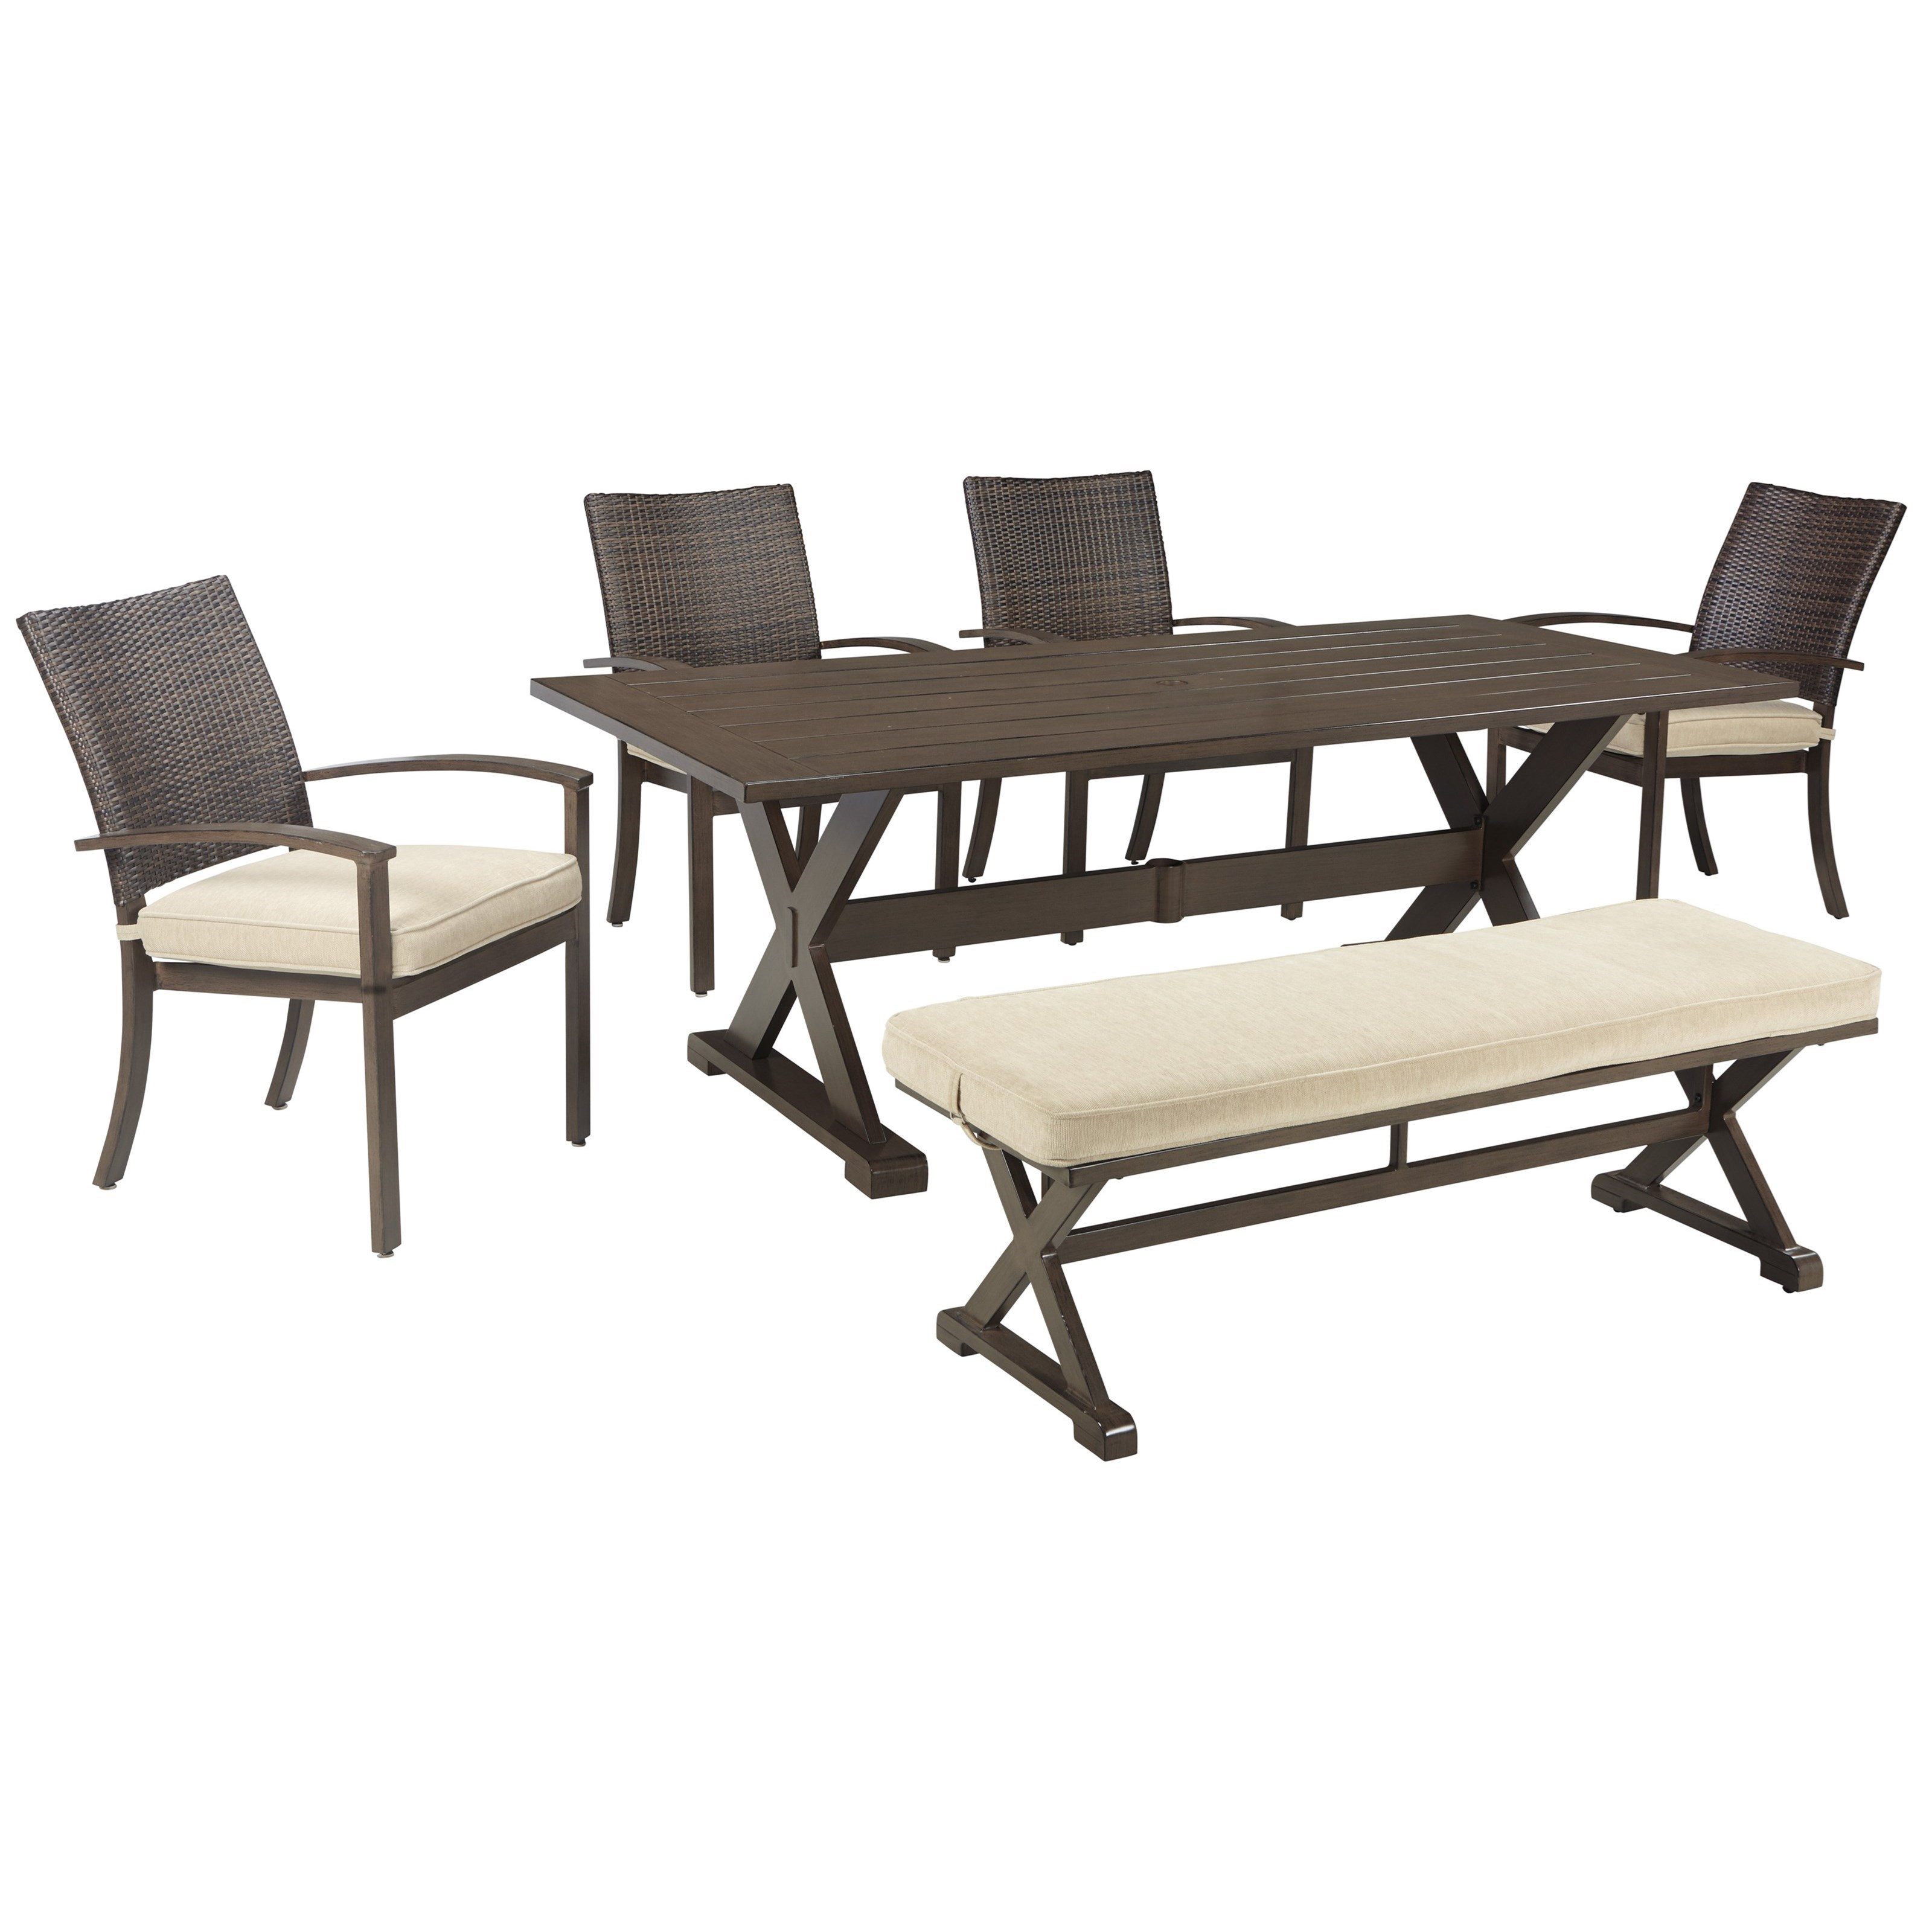 Signature Design By Ashley Moresdale Outdoor Dining Set With Bench   Item  Number: P457